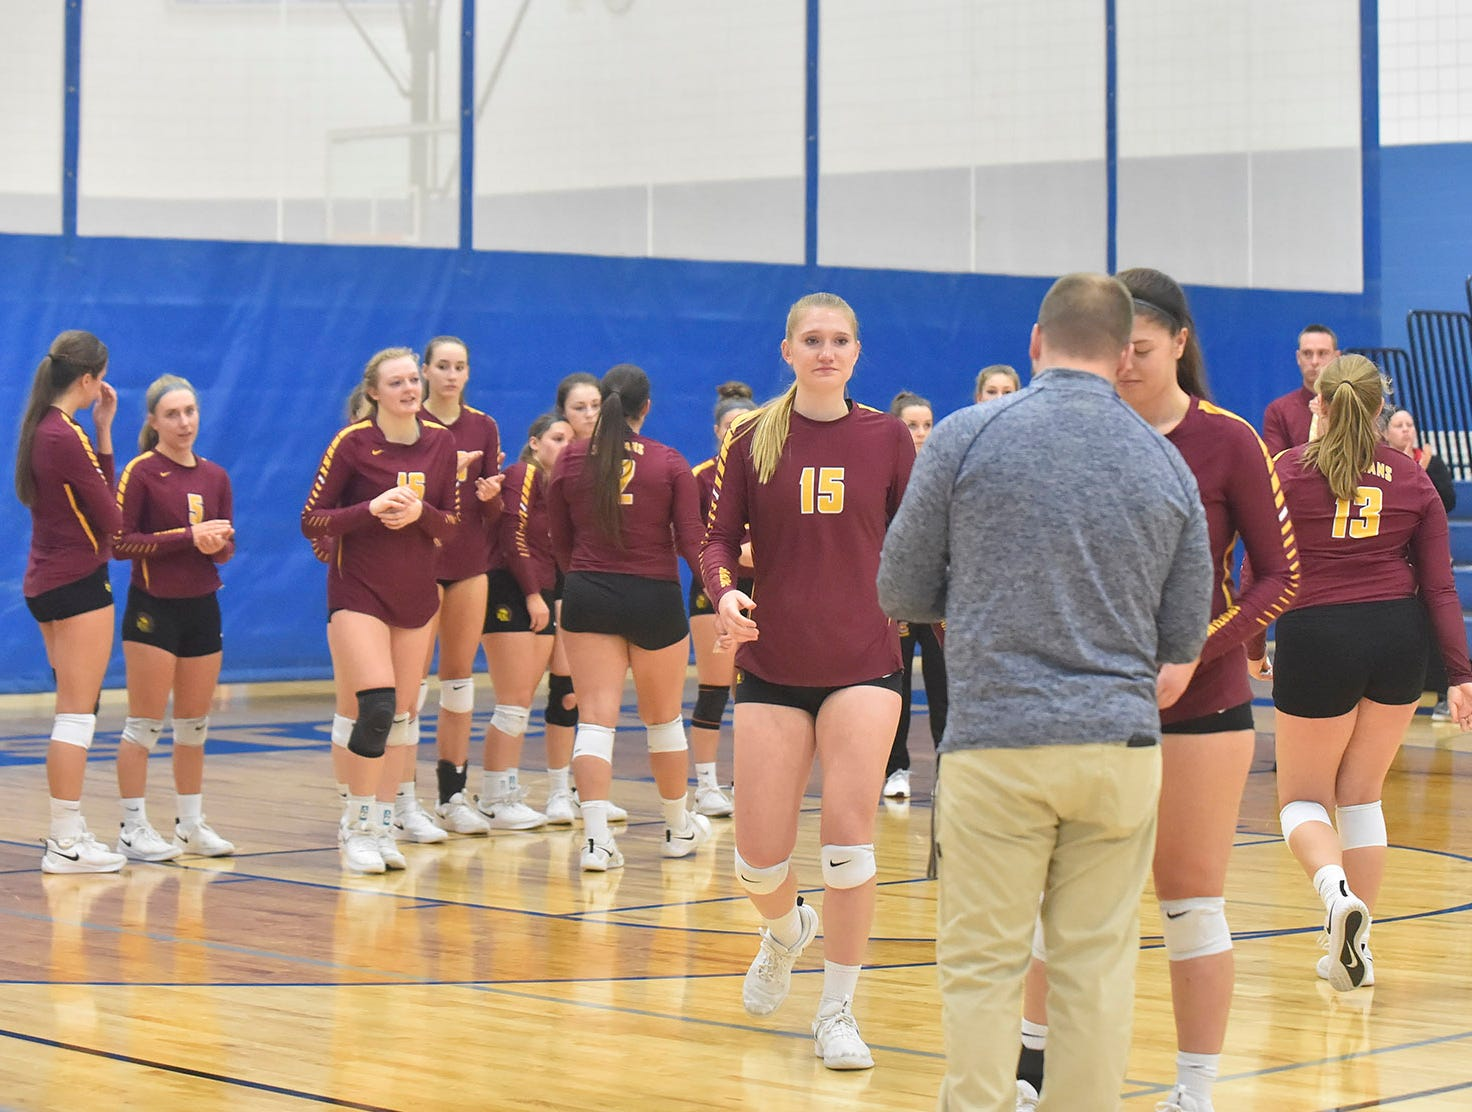 Luxemburg-Casco receives runnerup medals at the WIAA Division 2 sectional final on Oct. 27, 2018, in Wrightstown. Little Chute advances to state. Tina M. Gohr/USA TODAY NETWORK-Wisconsin